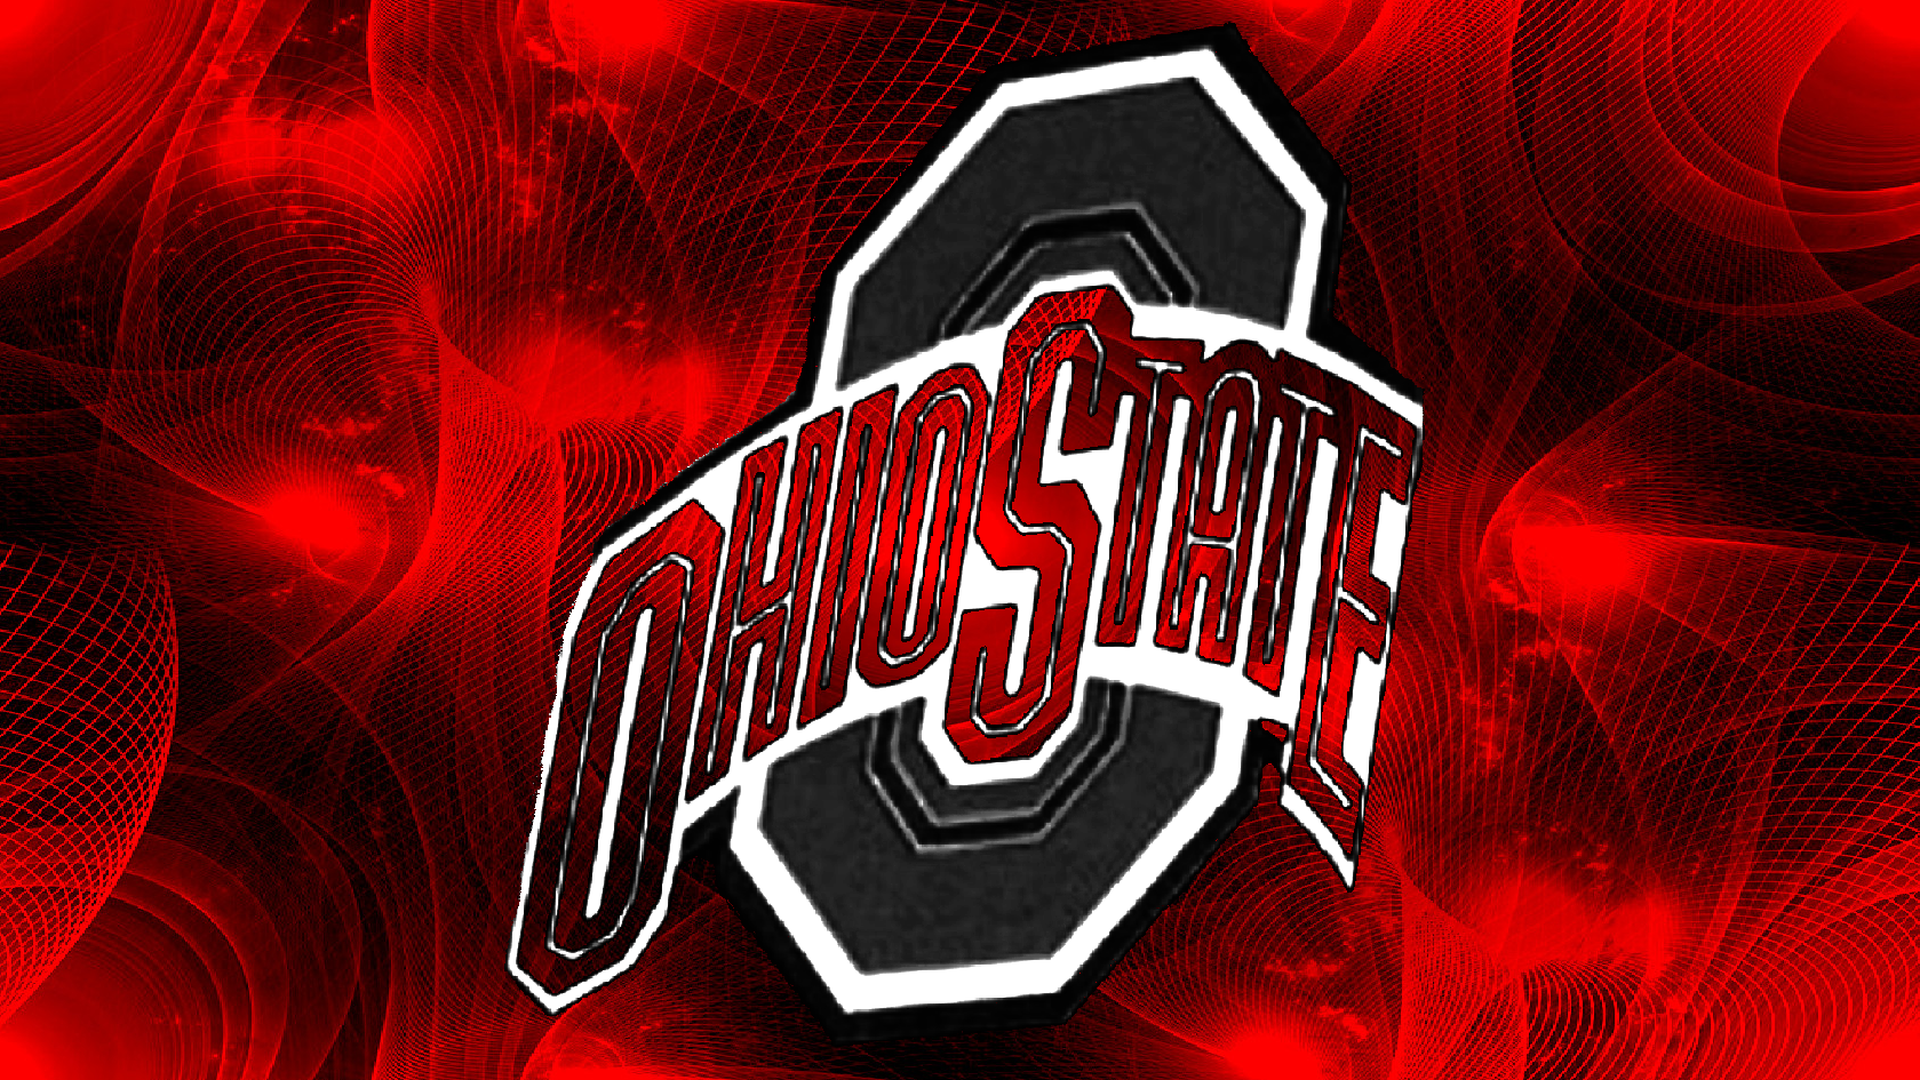 Gray Block O Ohio State On A Fractal Background By Bucks7t2 Buckeye Nation Ohio State Ohio State Wallpaper